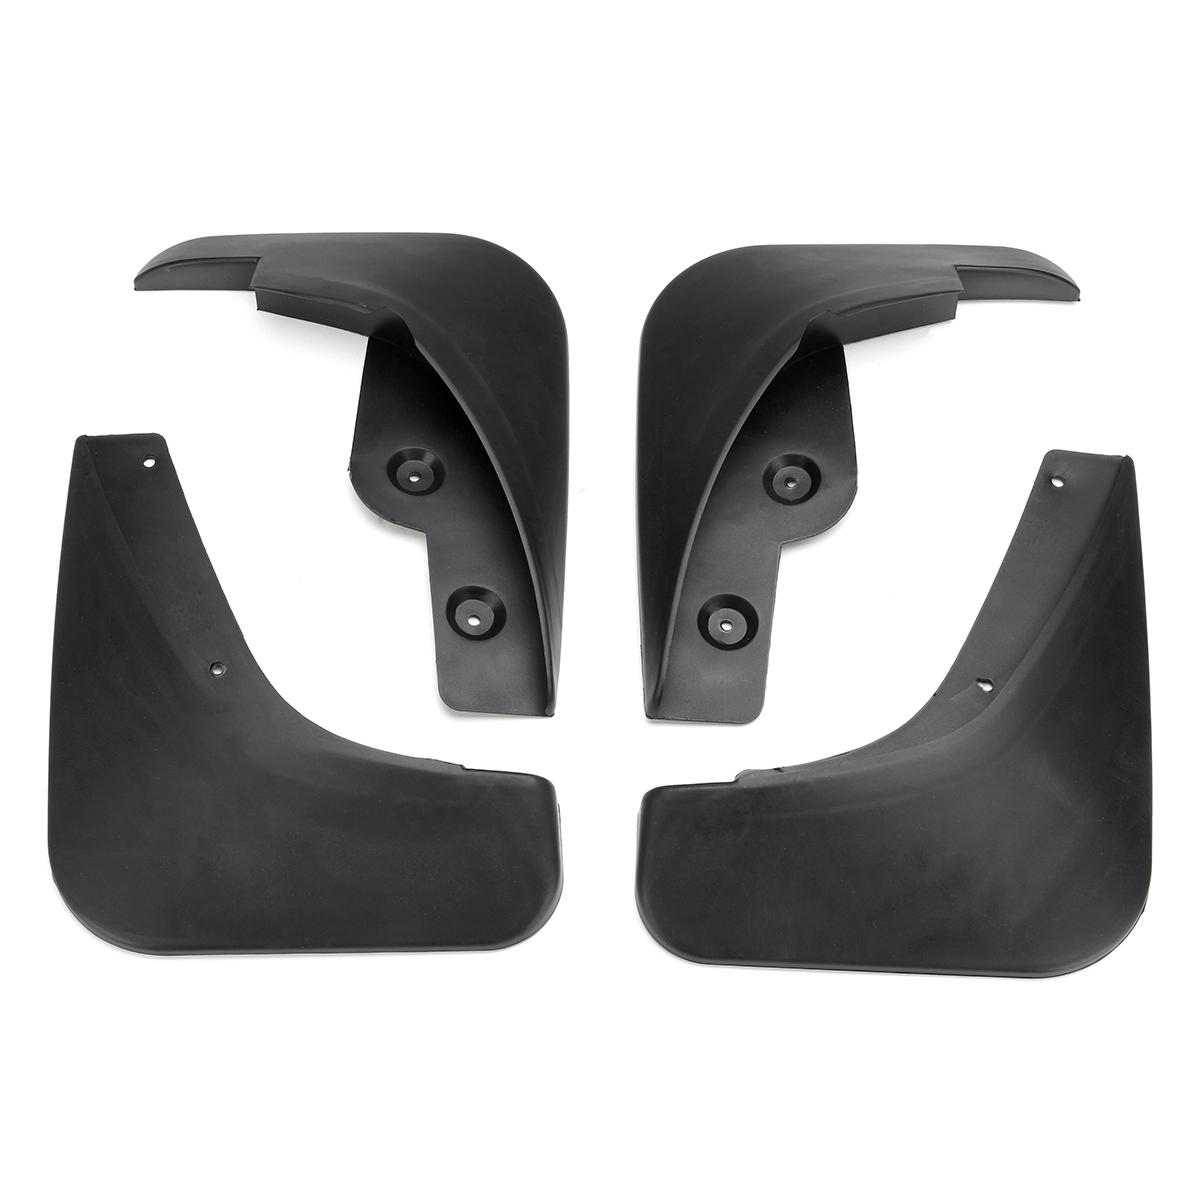 For 2014-17 Mazda 3 Hatch Axela Mudflaps Mud Flaps Splash Guards Mudguard Black